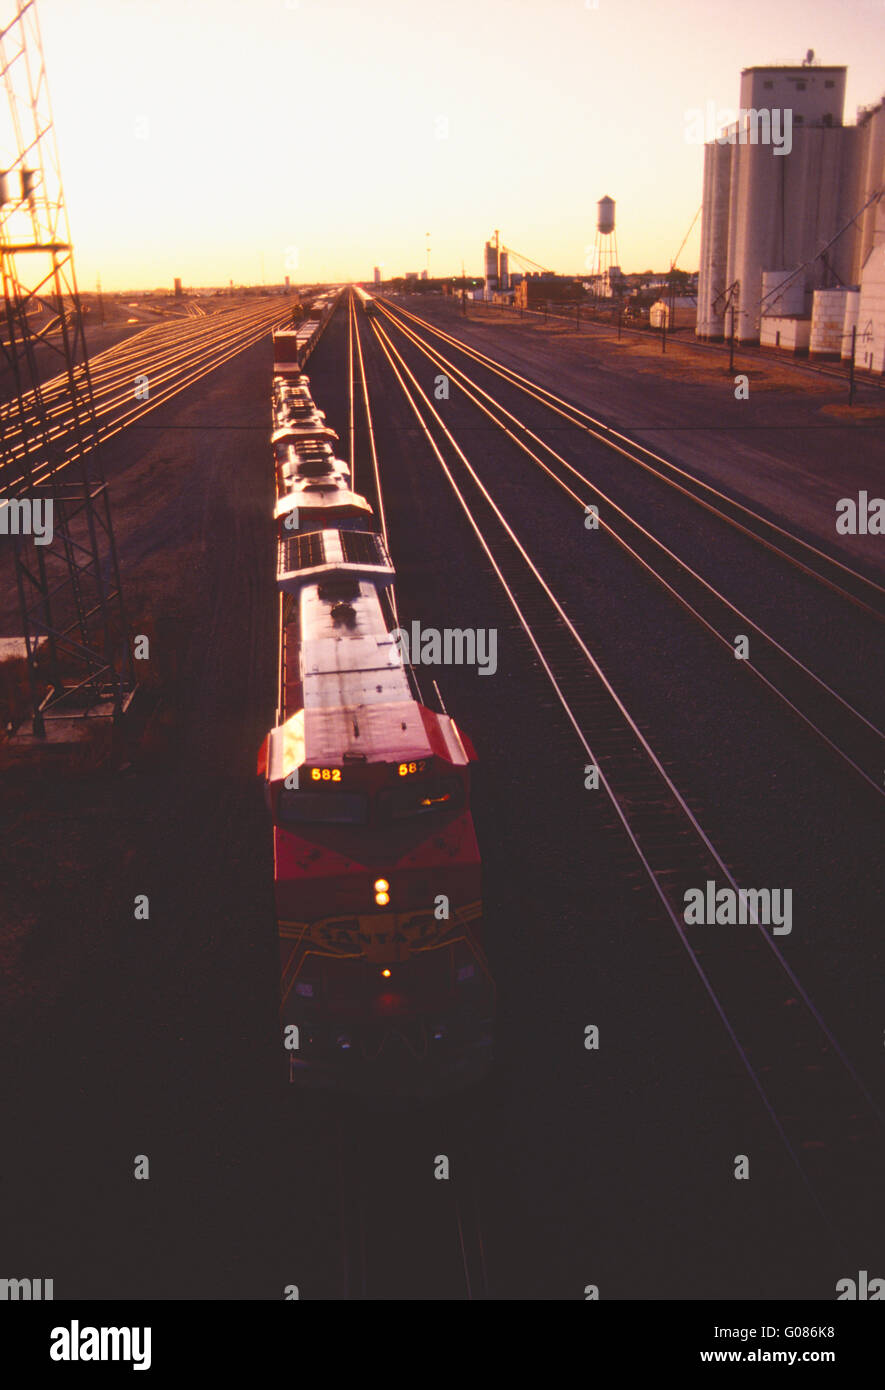 Locomotive in large industrial rail yard at sunset; Clovis; New Mexico; USA - Stock Image